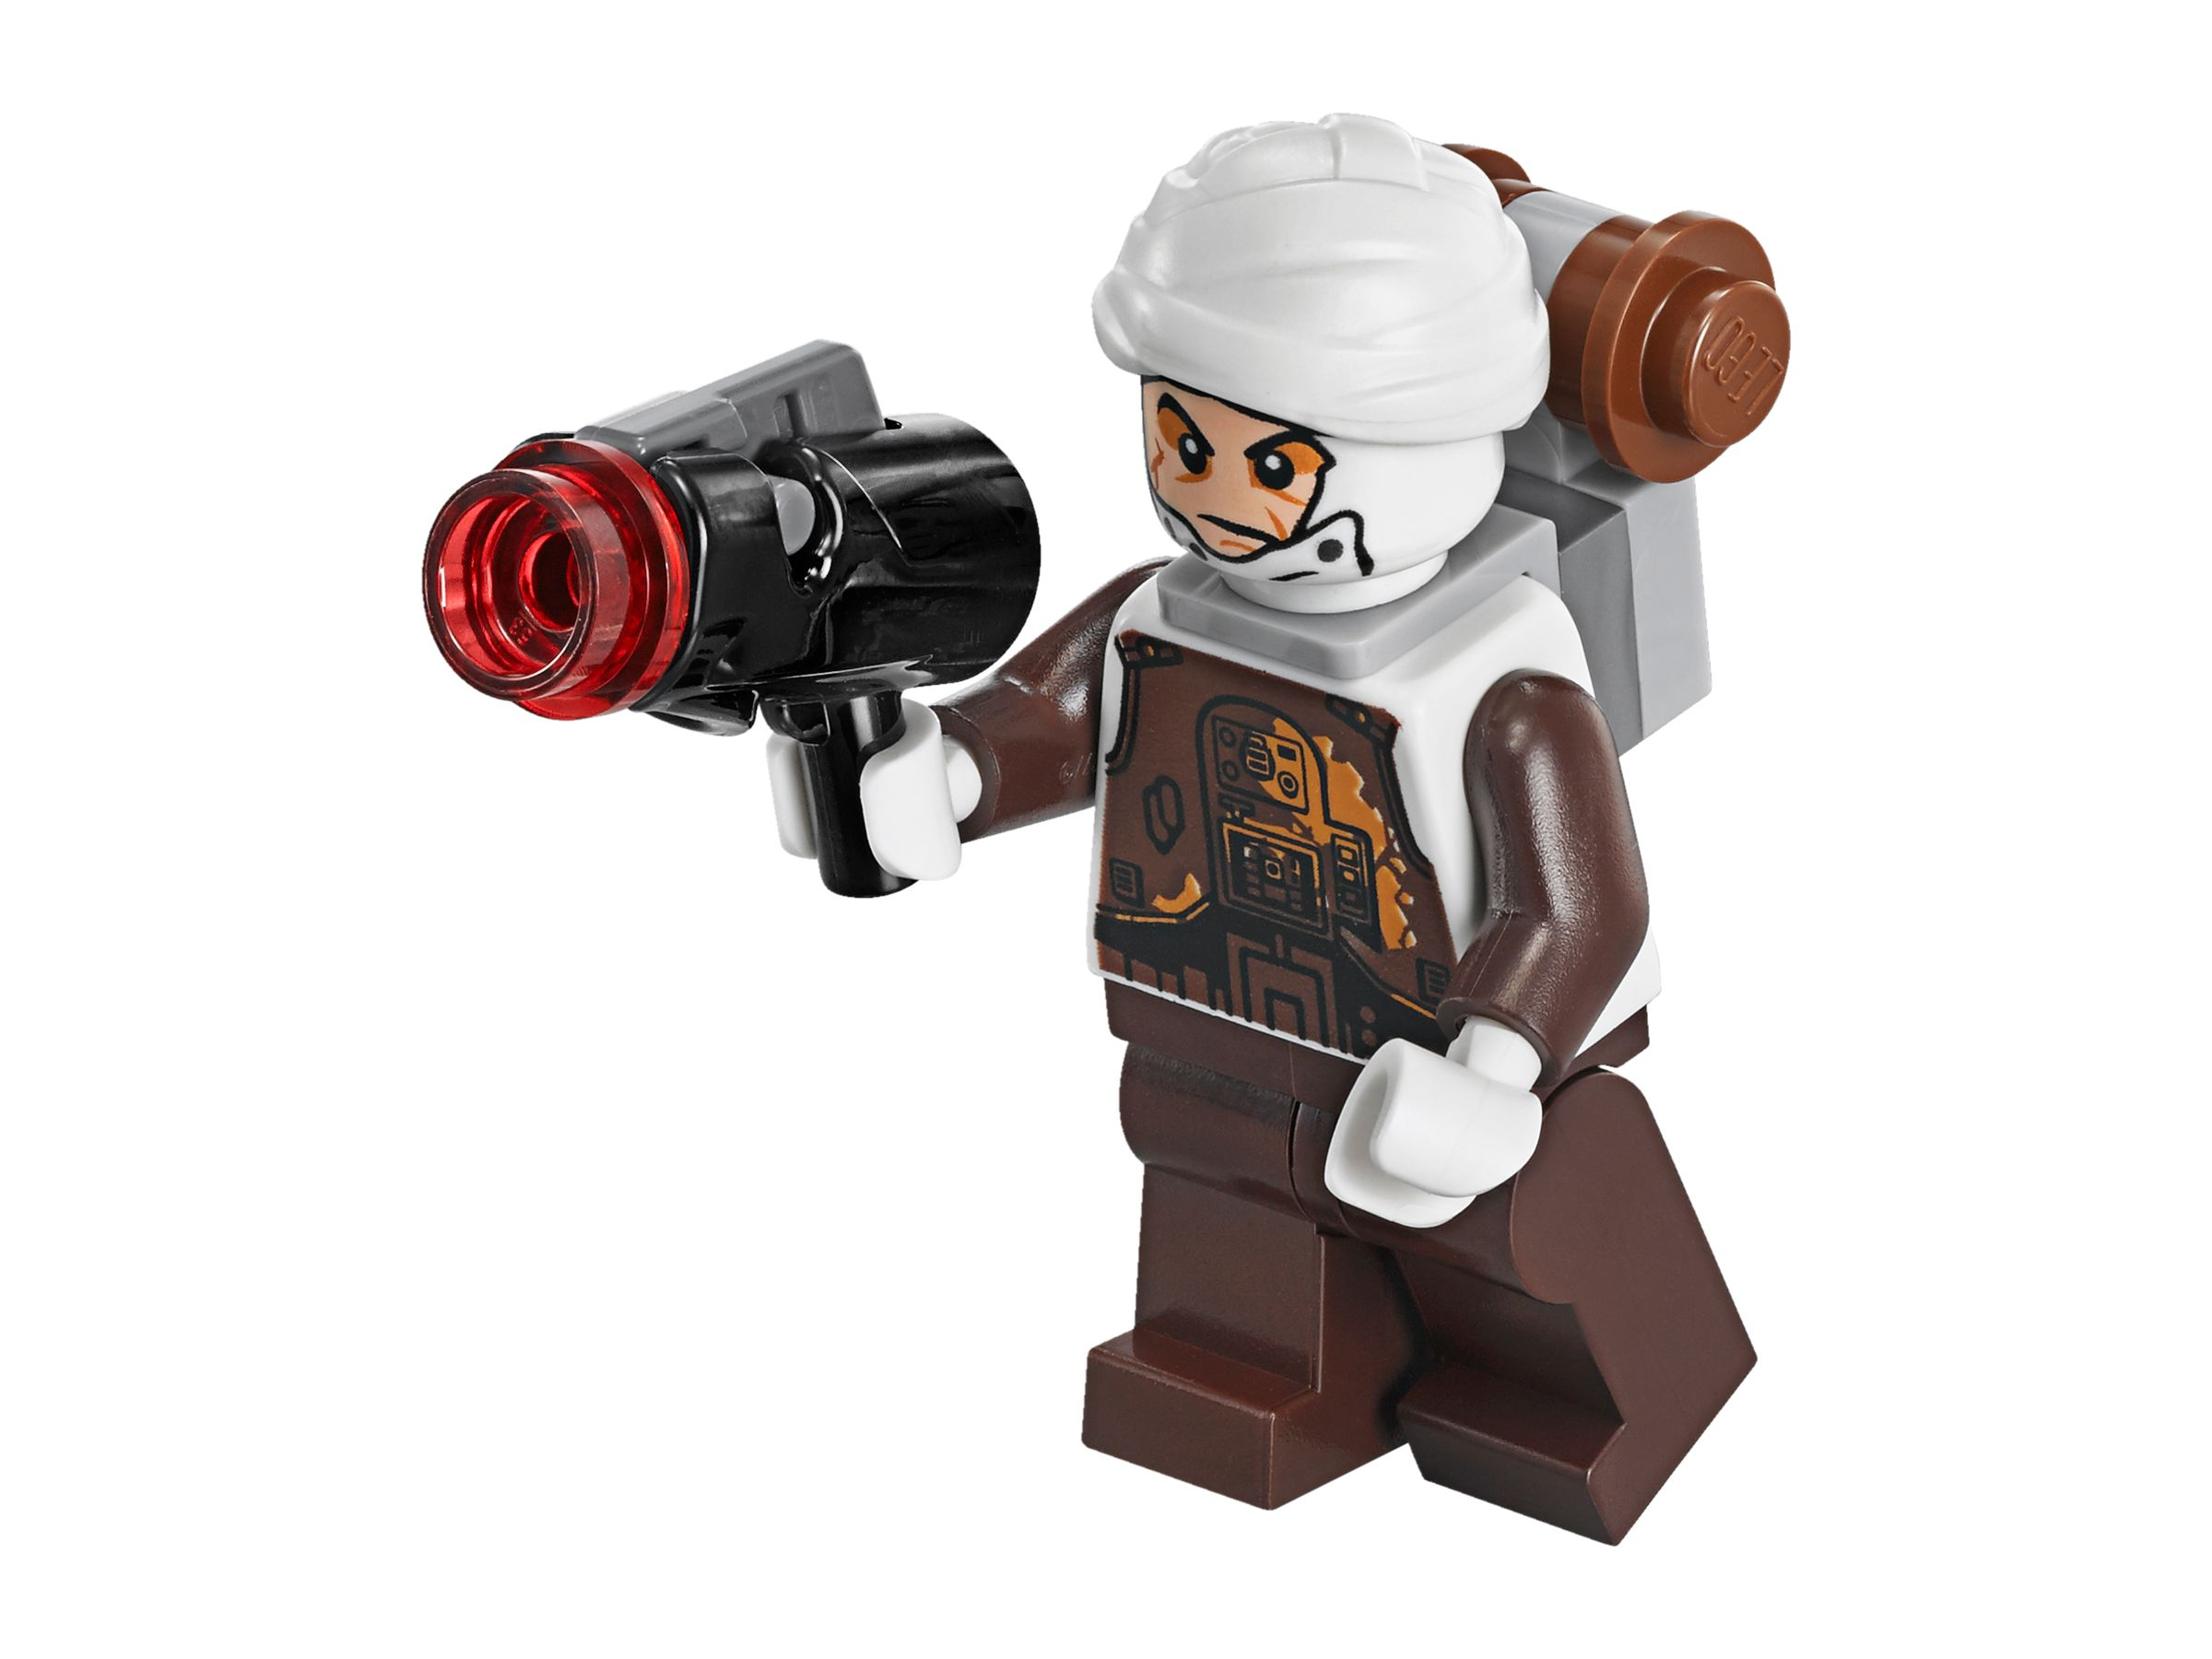 LEGO Star Wars 75167 Bounty Hunter Speeder Bike™ Battle Pack LEGO_75167_alt7.jpg